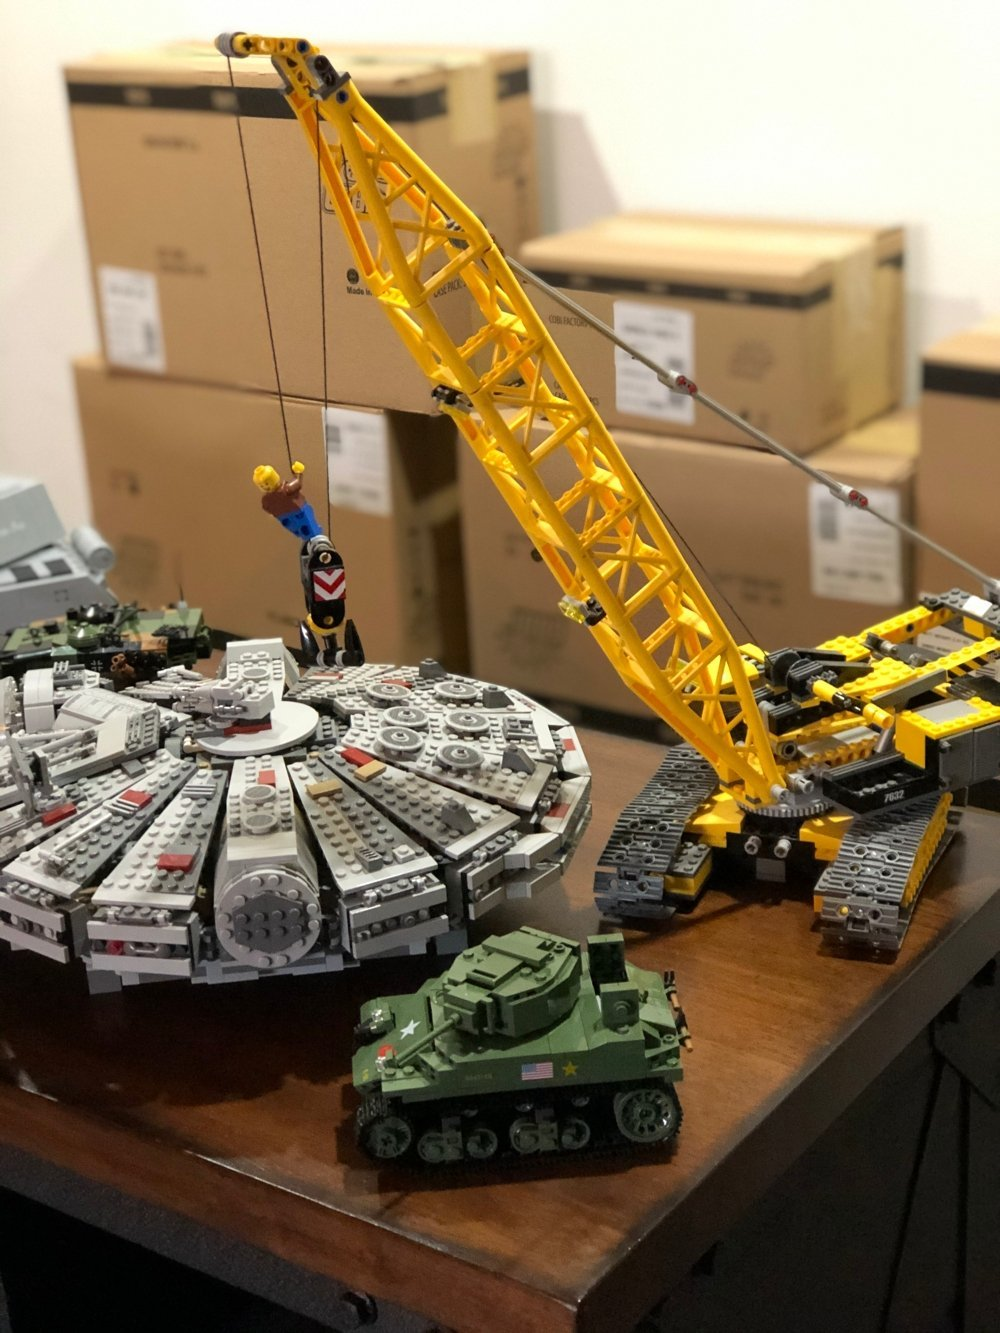 COBI Vs LEGO which is better?